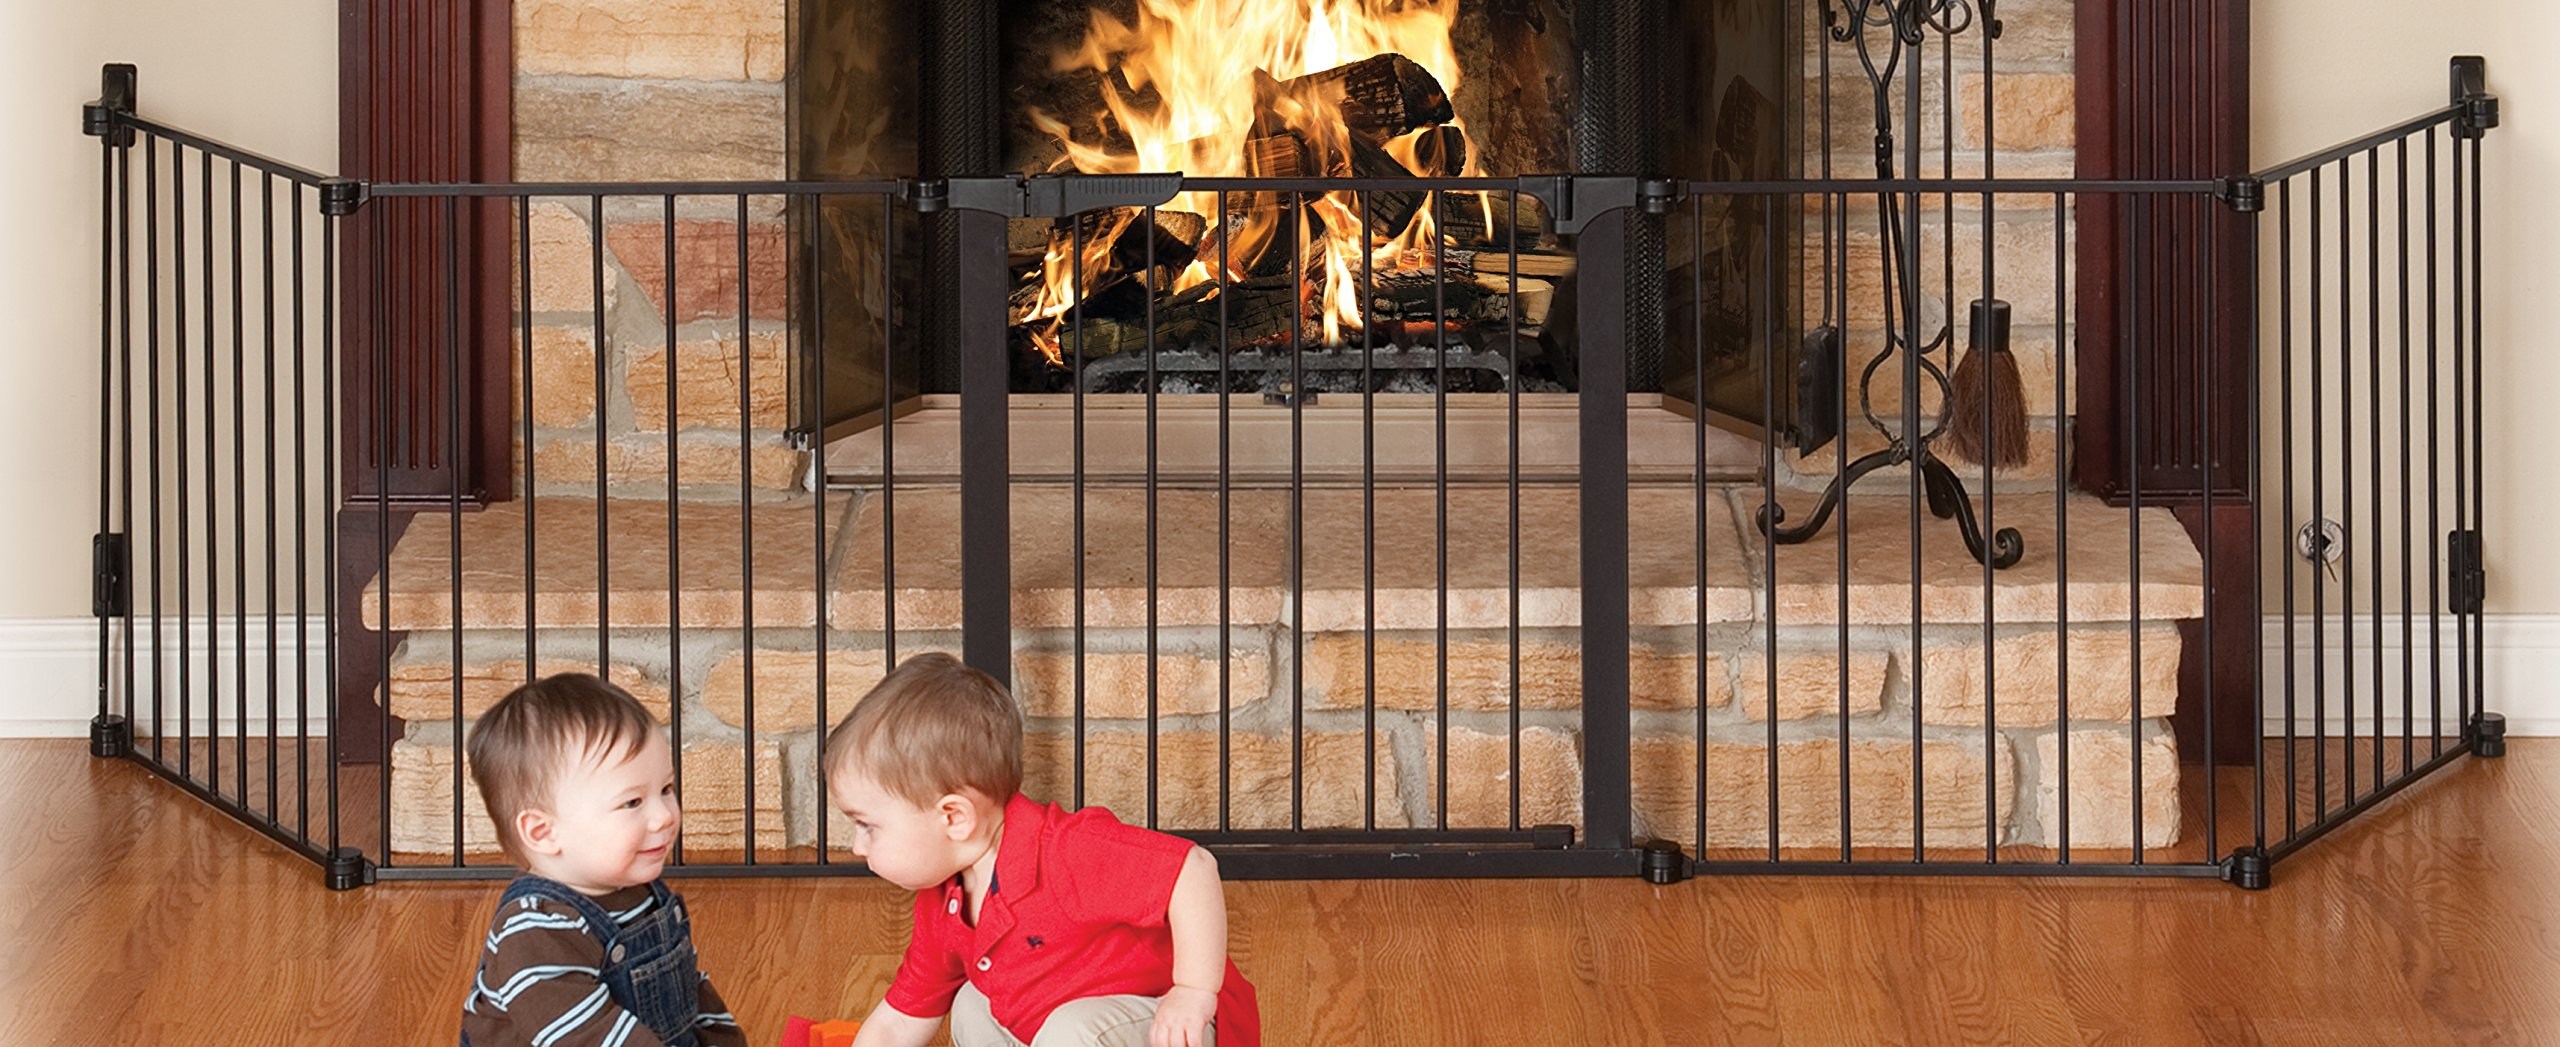 Auto Close HearthGate Pet Gate by KidCo (Image #4)